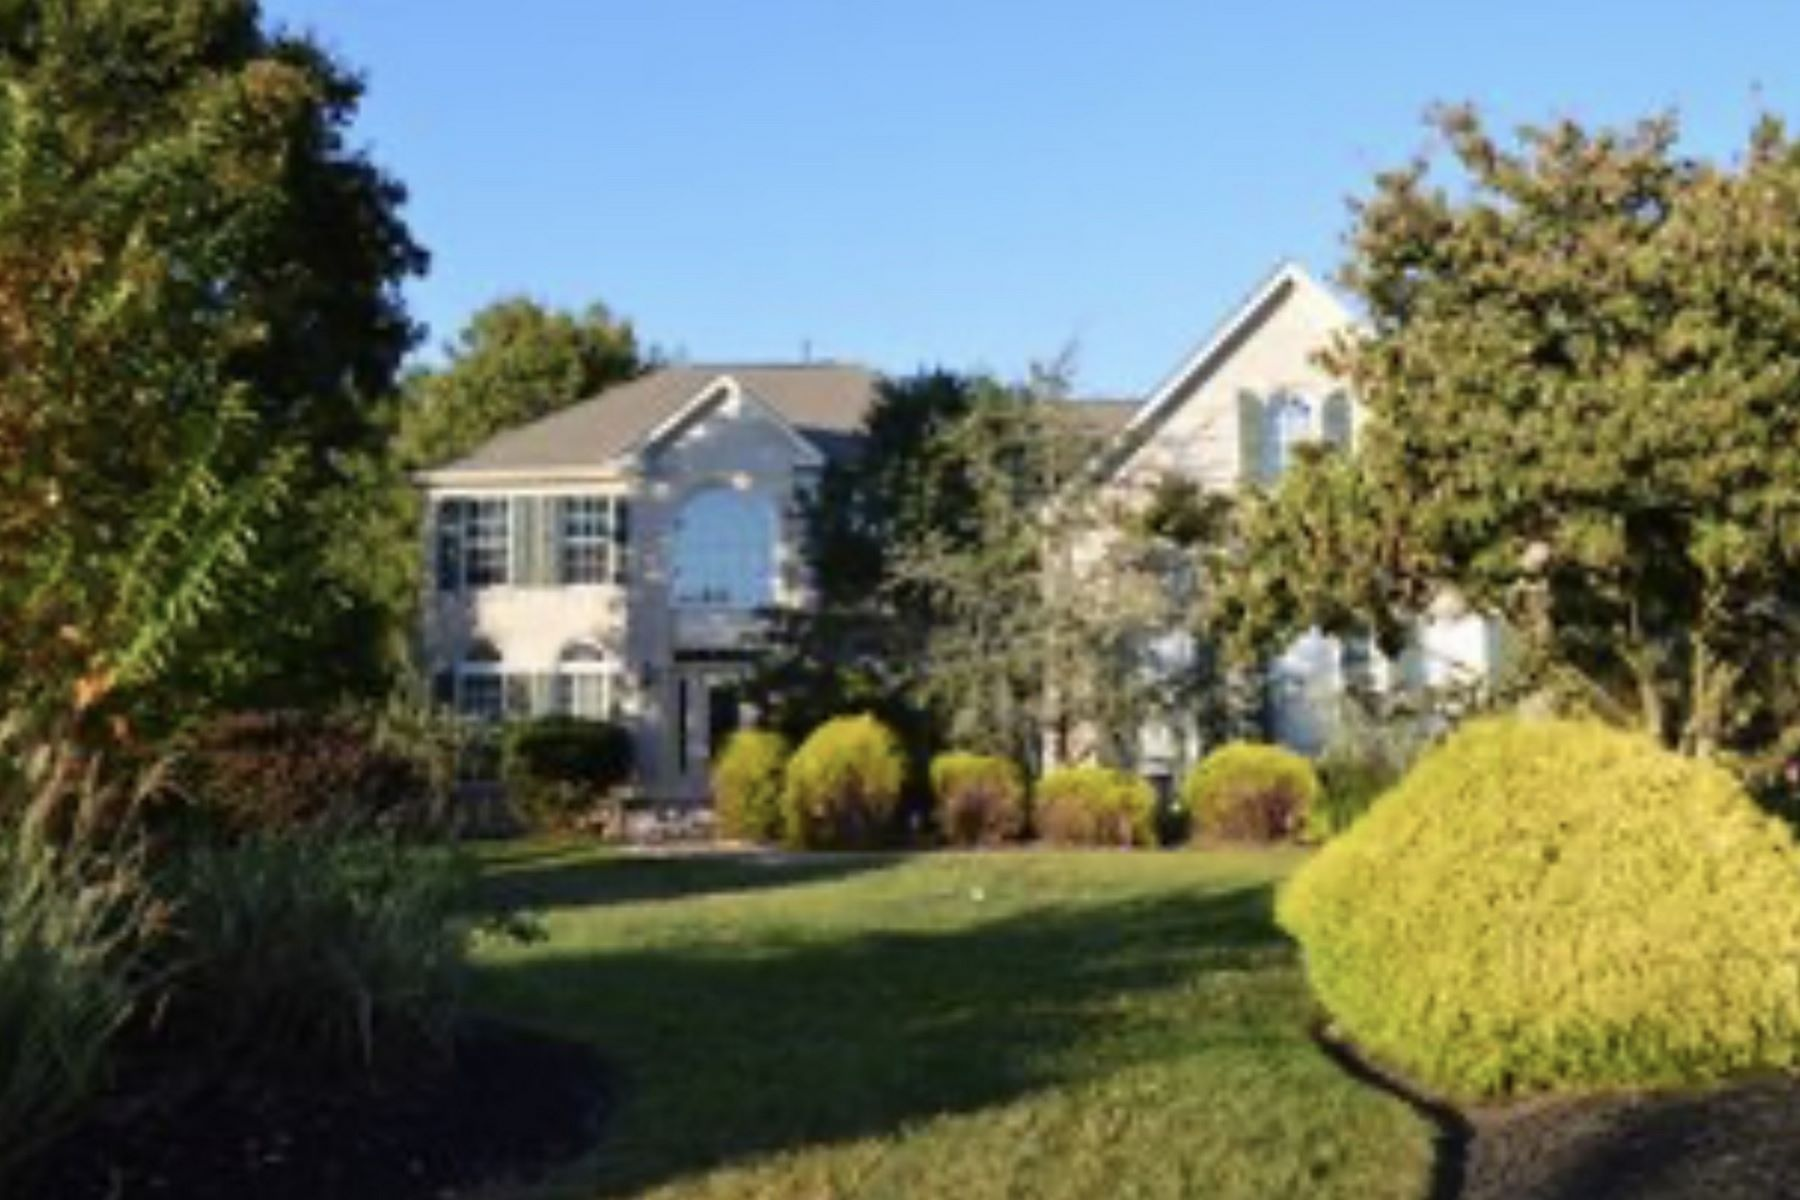 Single Family Homes for Sale at Ballenger Woods 22 Marshall Dr, Egg Harbor Township, New Jersey 08234 United States